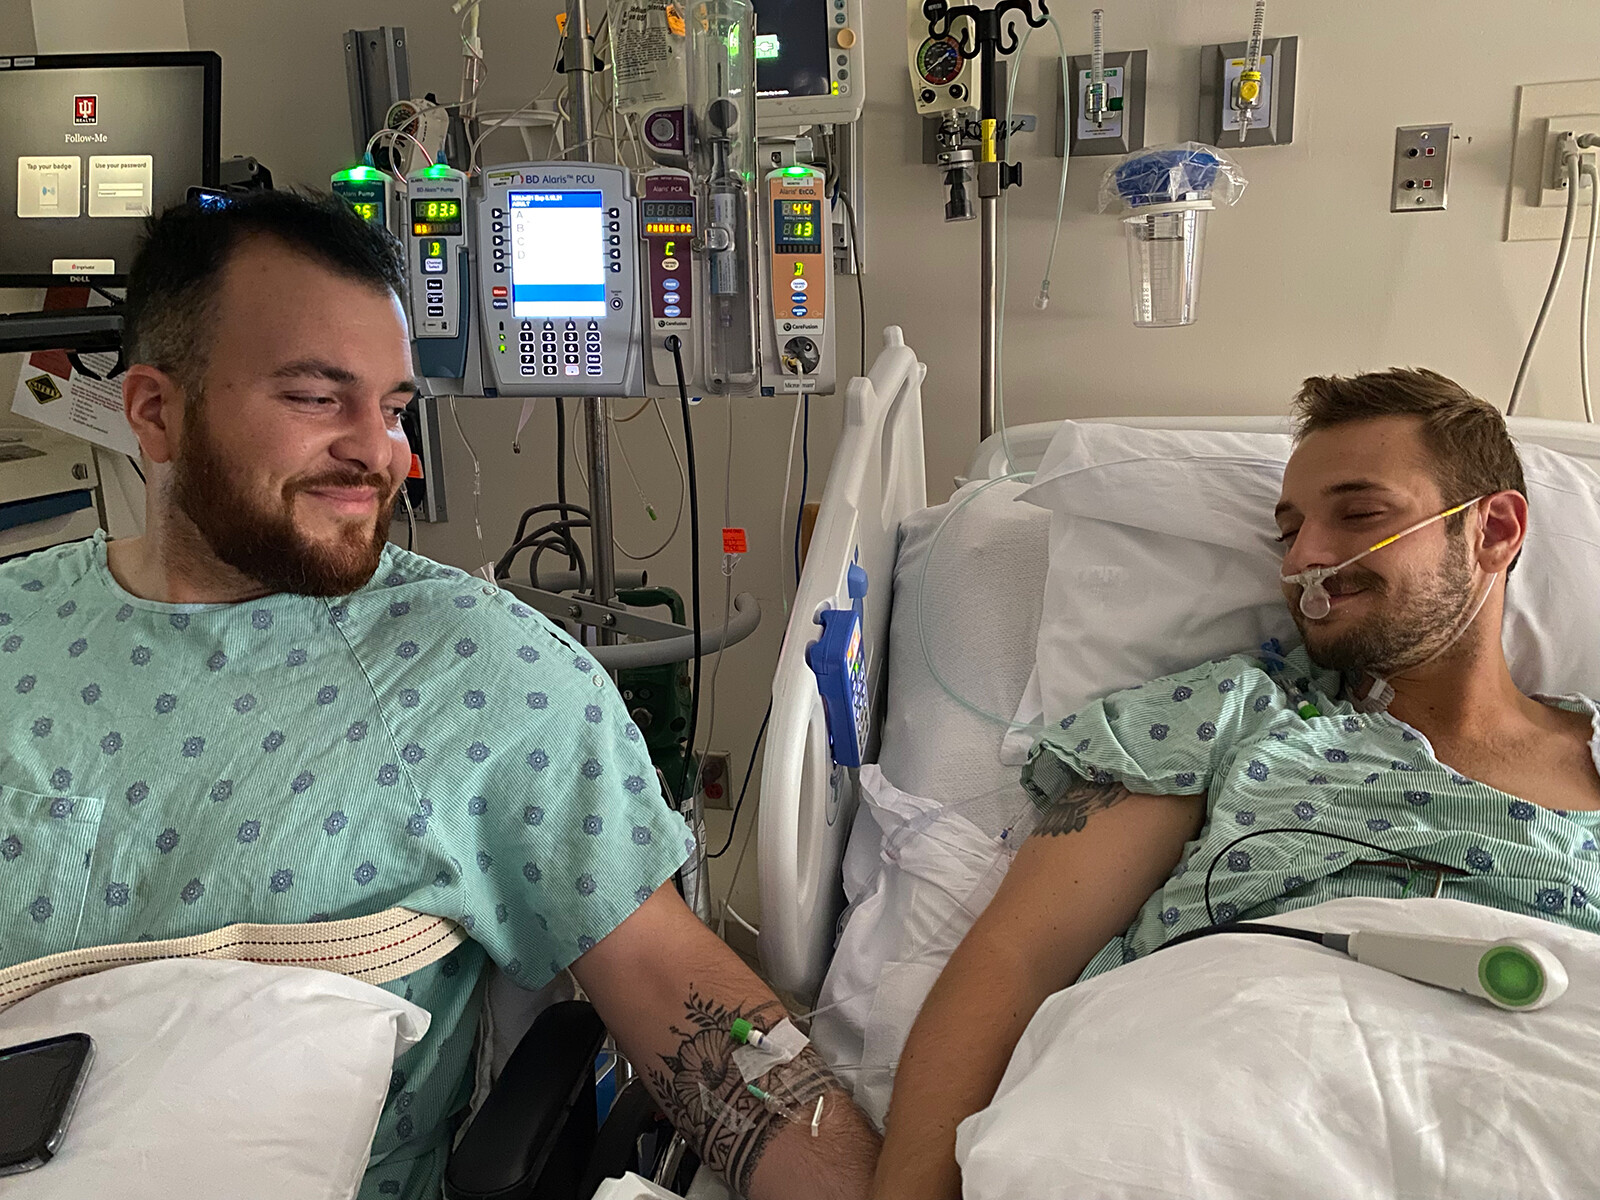 <i>Courtesy Reid Alexander and Rafael Diaz</i><br/>The day after their surgeries at Indiana University Health